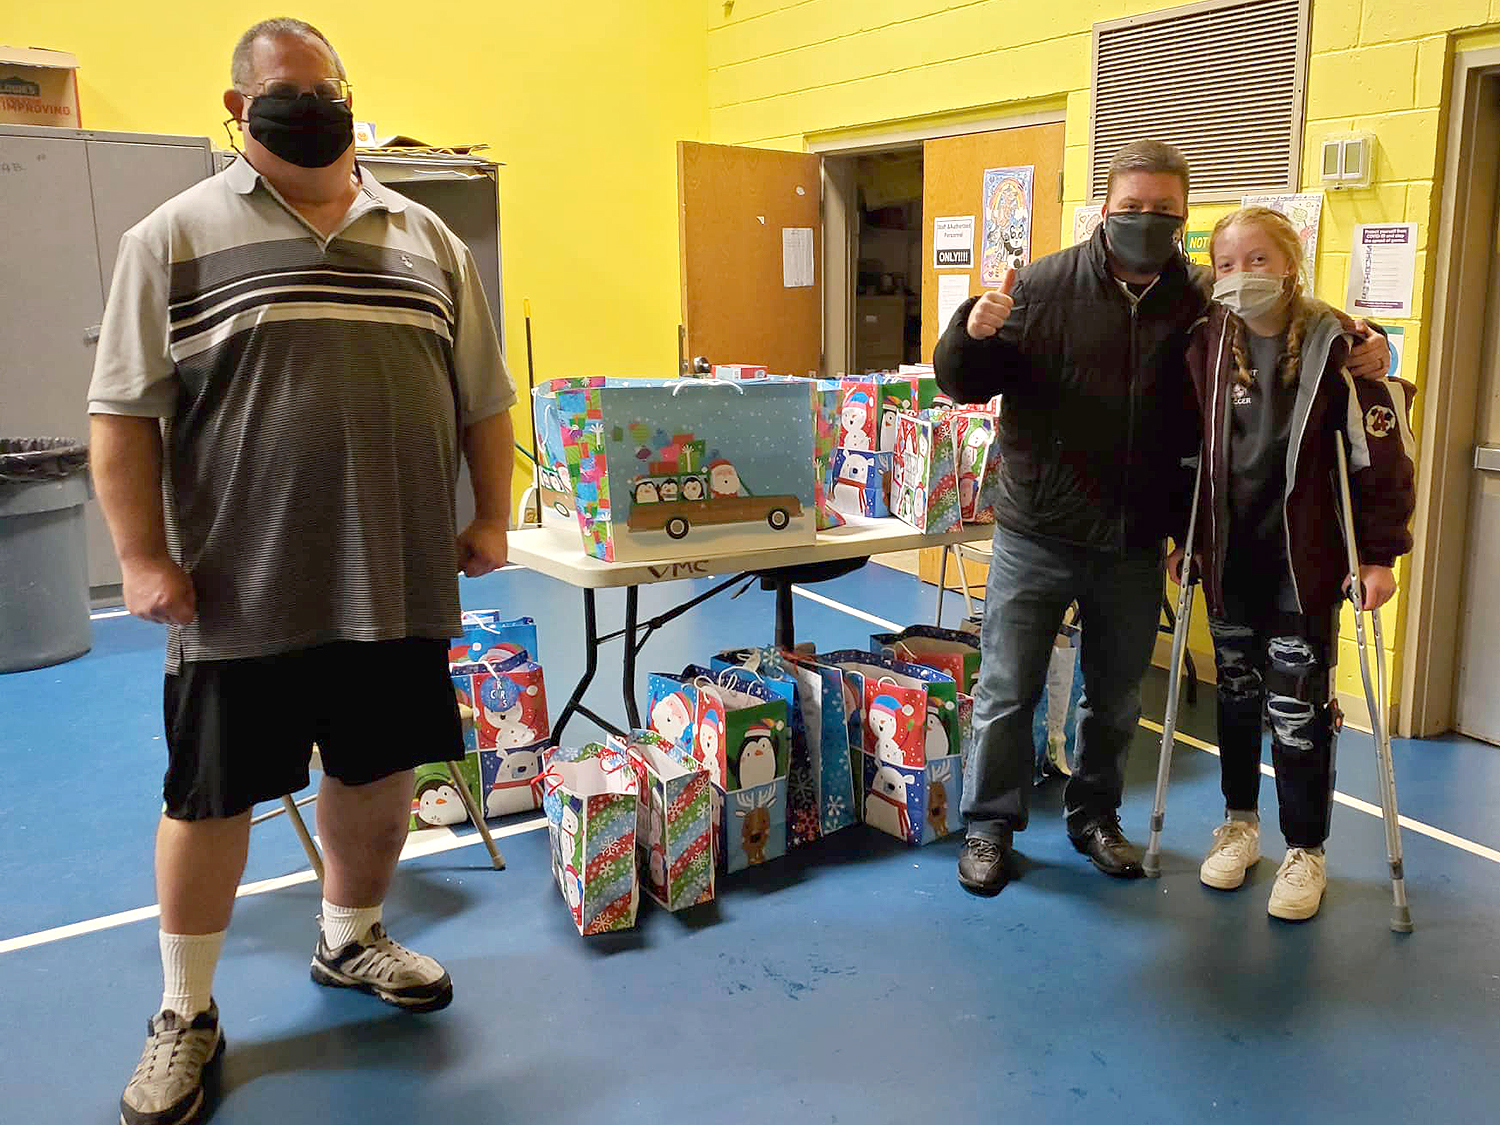 Kidz N Coaches delivered the wrapped gifts to the apartment building where the children live.